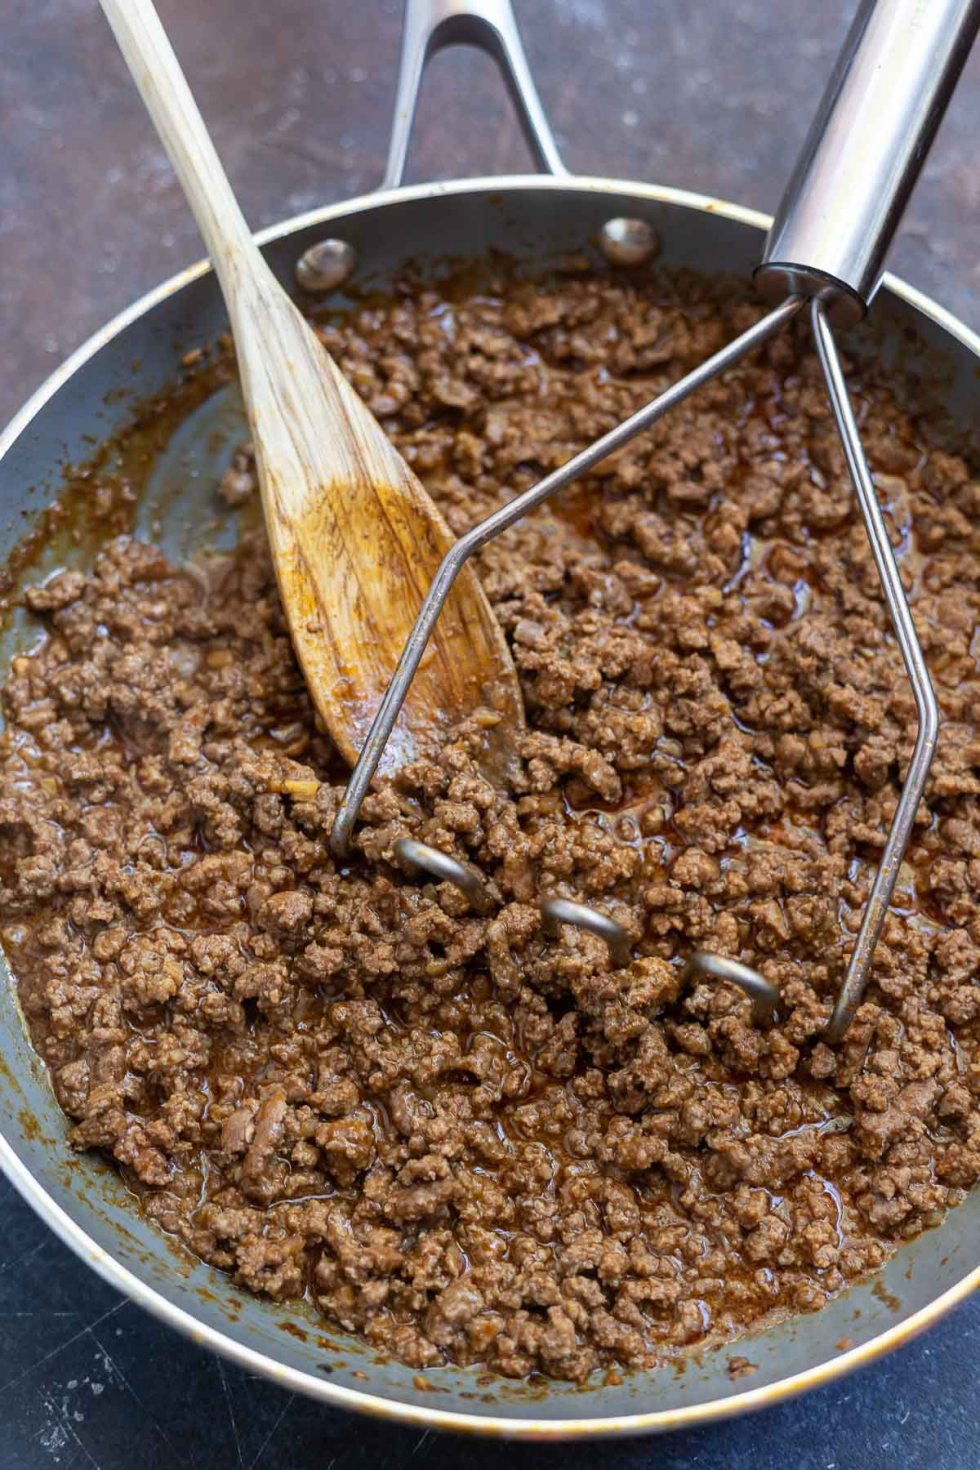 saucy ground beef taco meat in pan with wooden spoon and potato masher